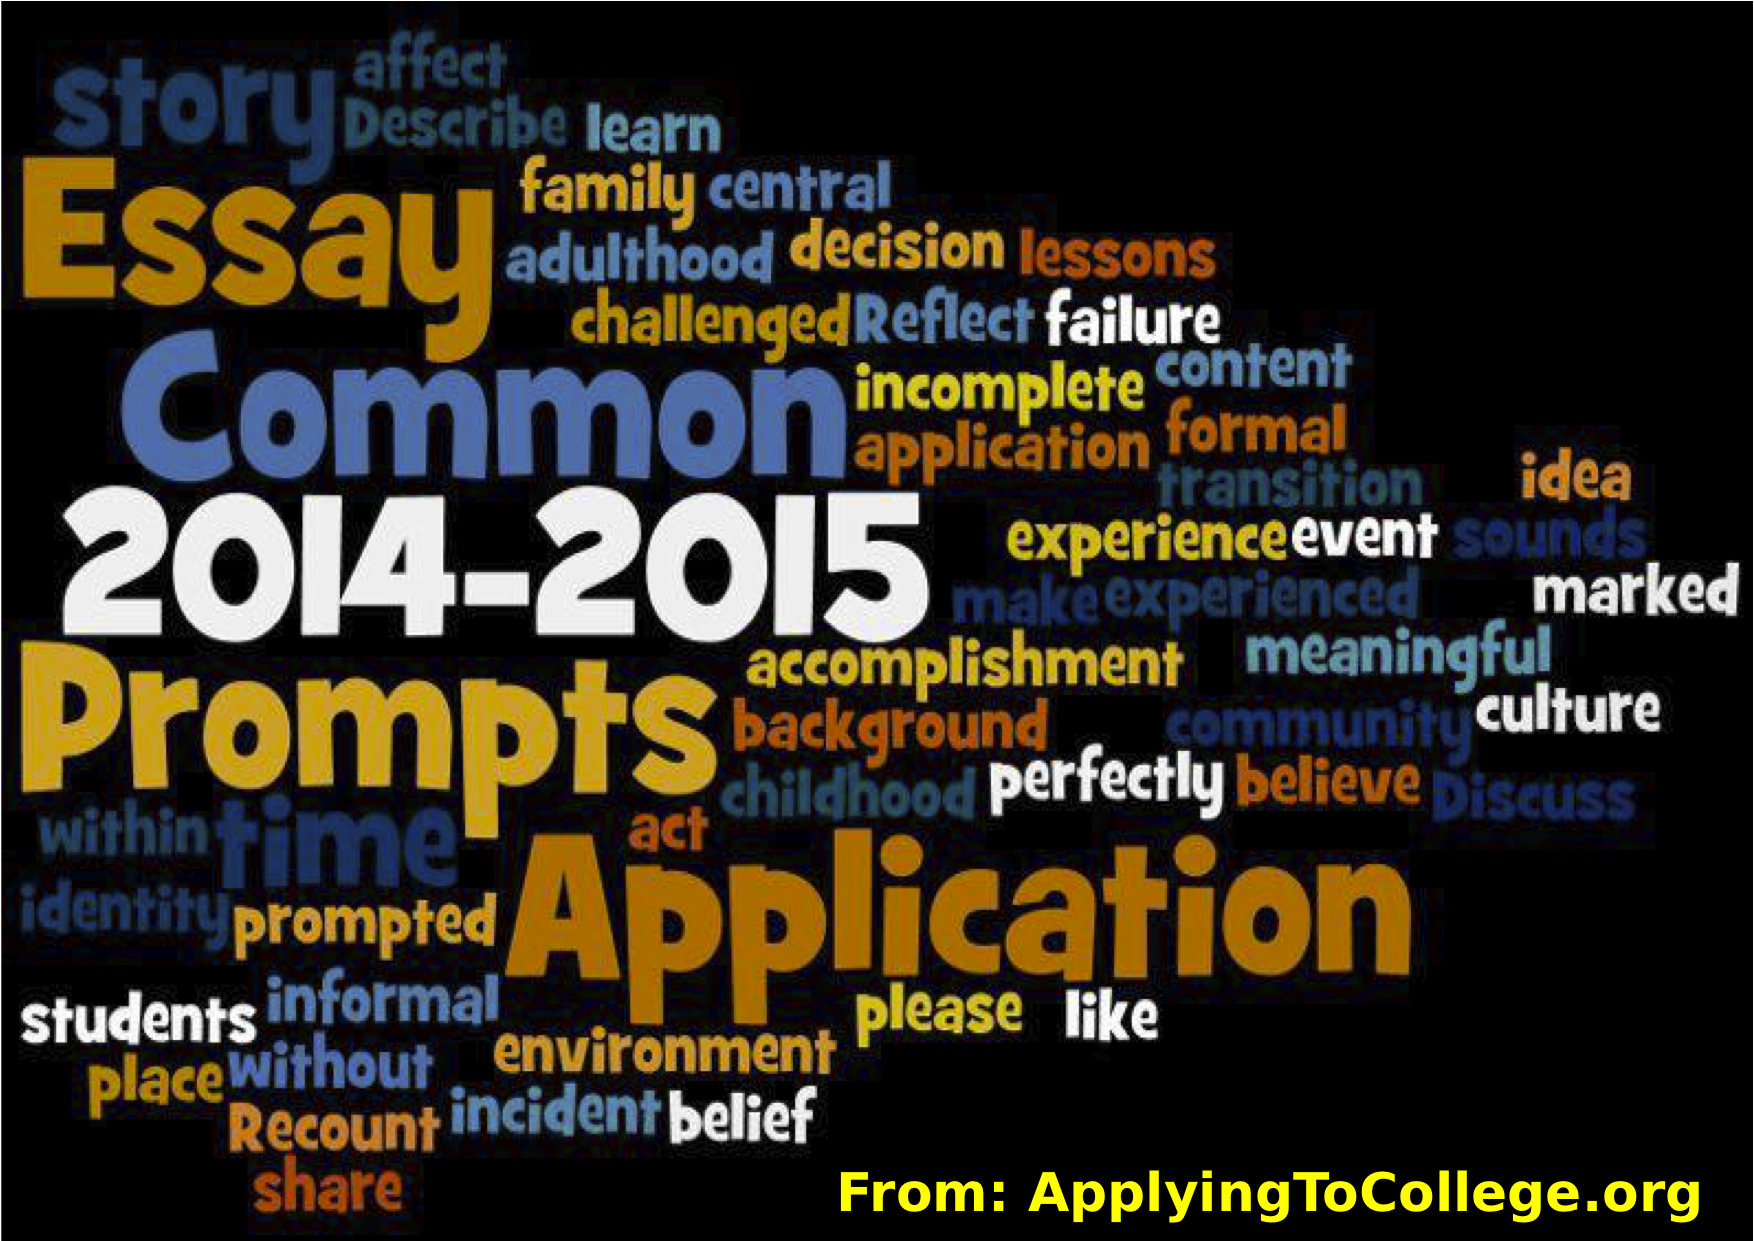 College application essay sample prompts for common